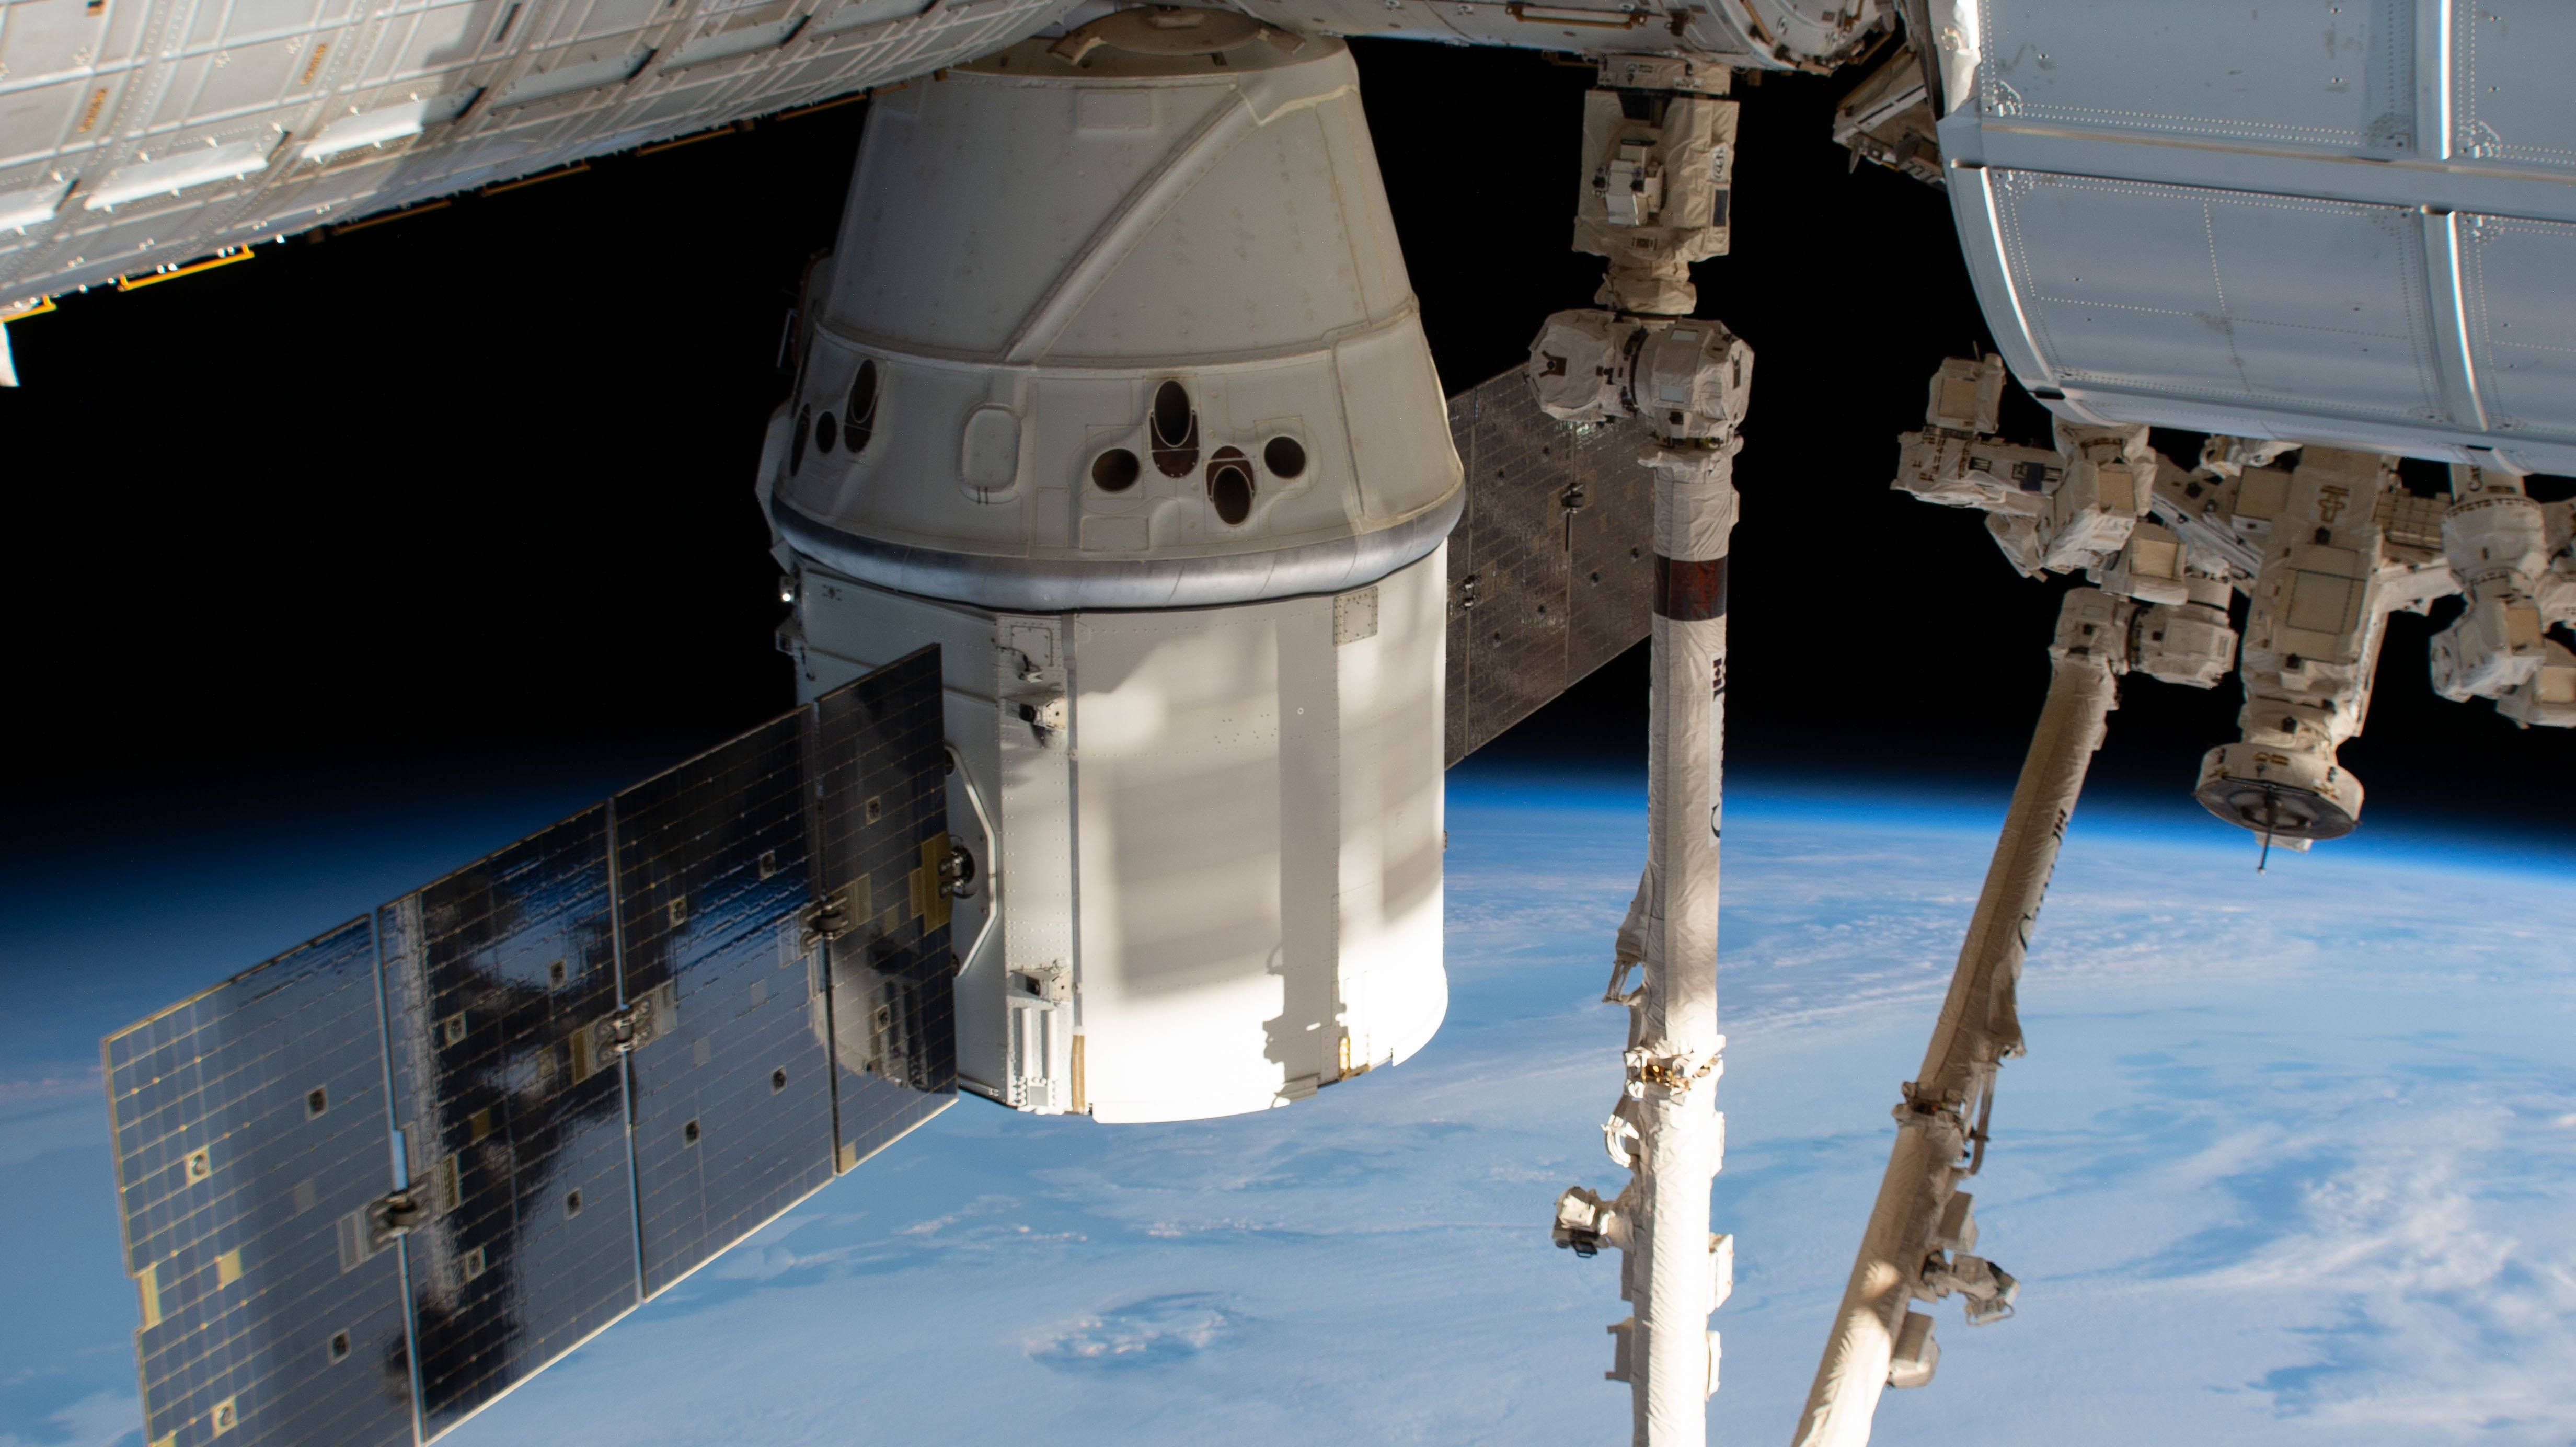 The SpaceX Dragon cargo craft is pictured attached to the International Space Station's Harmony module as the orbital complex orbited 261 miles above the Indian Ocean southwest of the continent of Africa. The Canadarm2 robotic arm vertically splits the frame prior to grappling the spacecraft ahead of planned departure activities. Credits: NASA